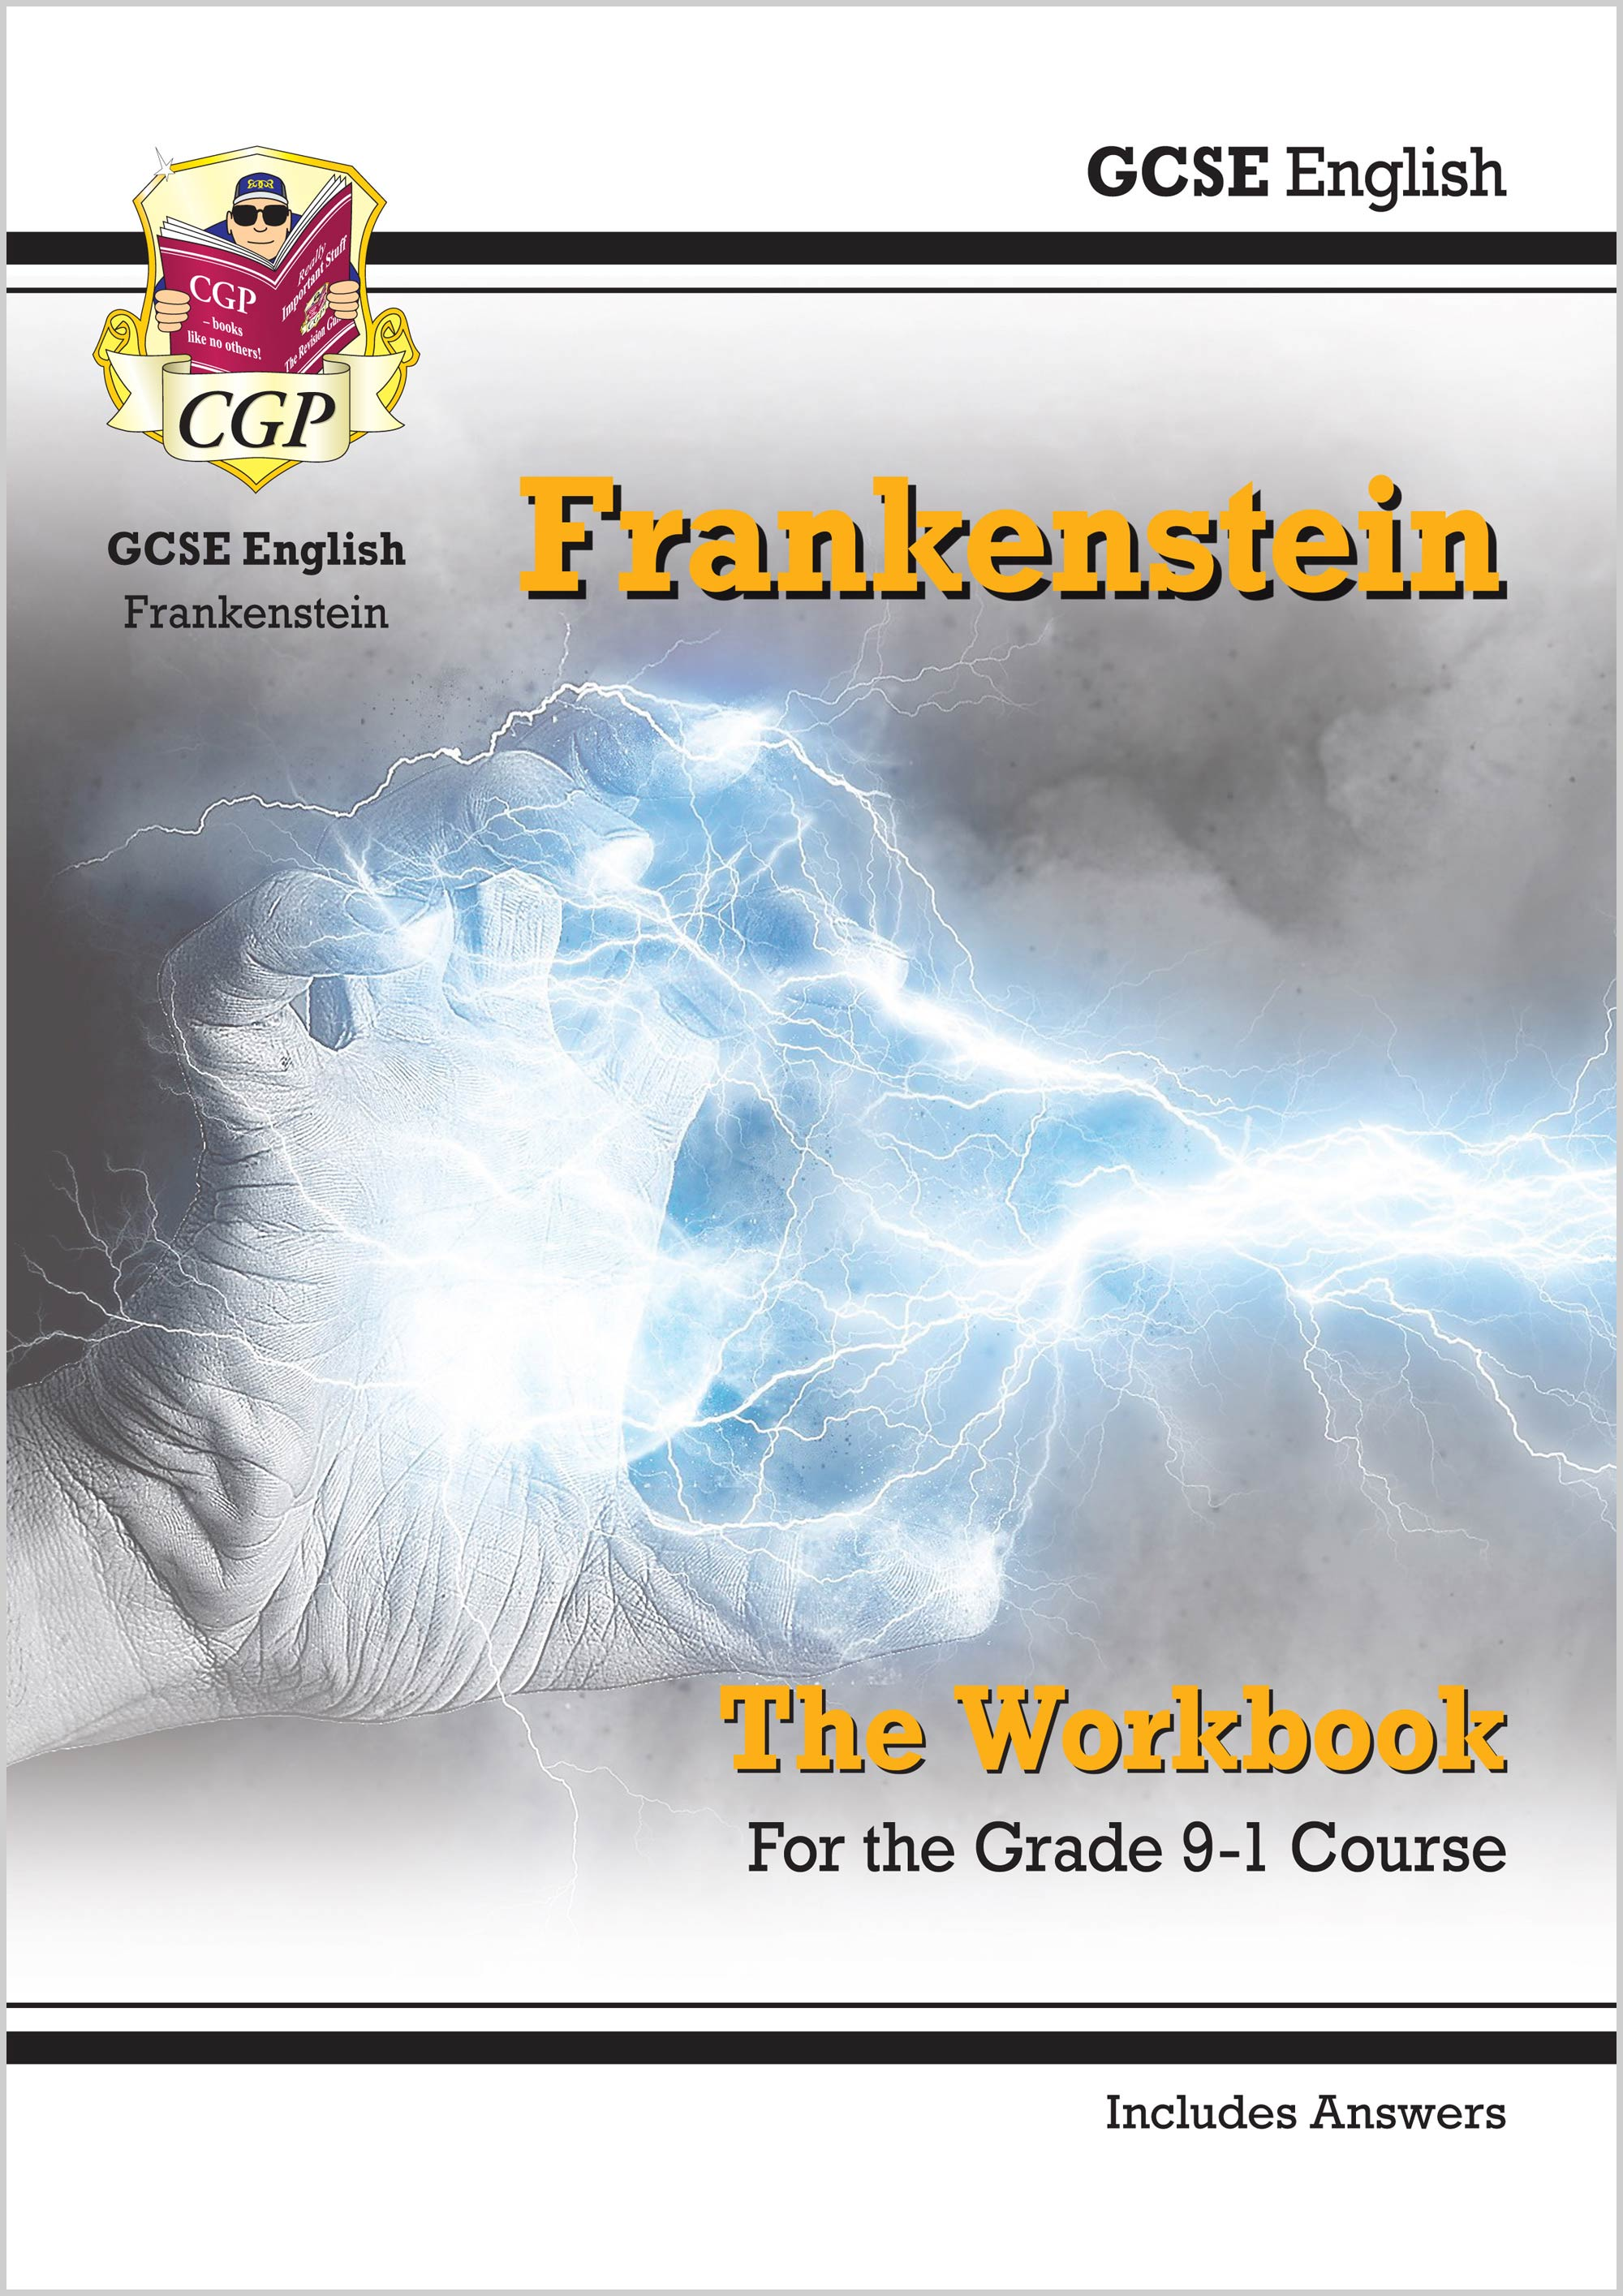 ETWF41 - New Grade 9-1 GCSE English - Frankenstein Workbook (includes Answers)